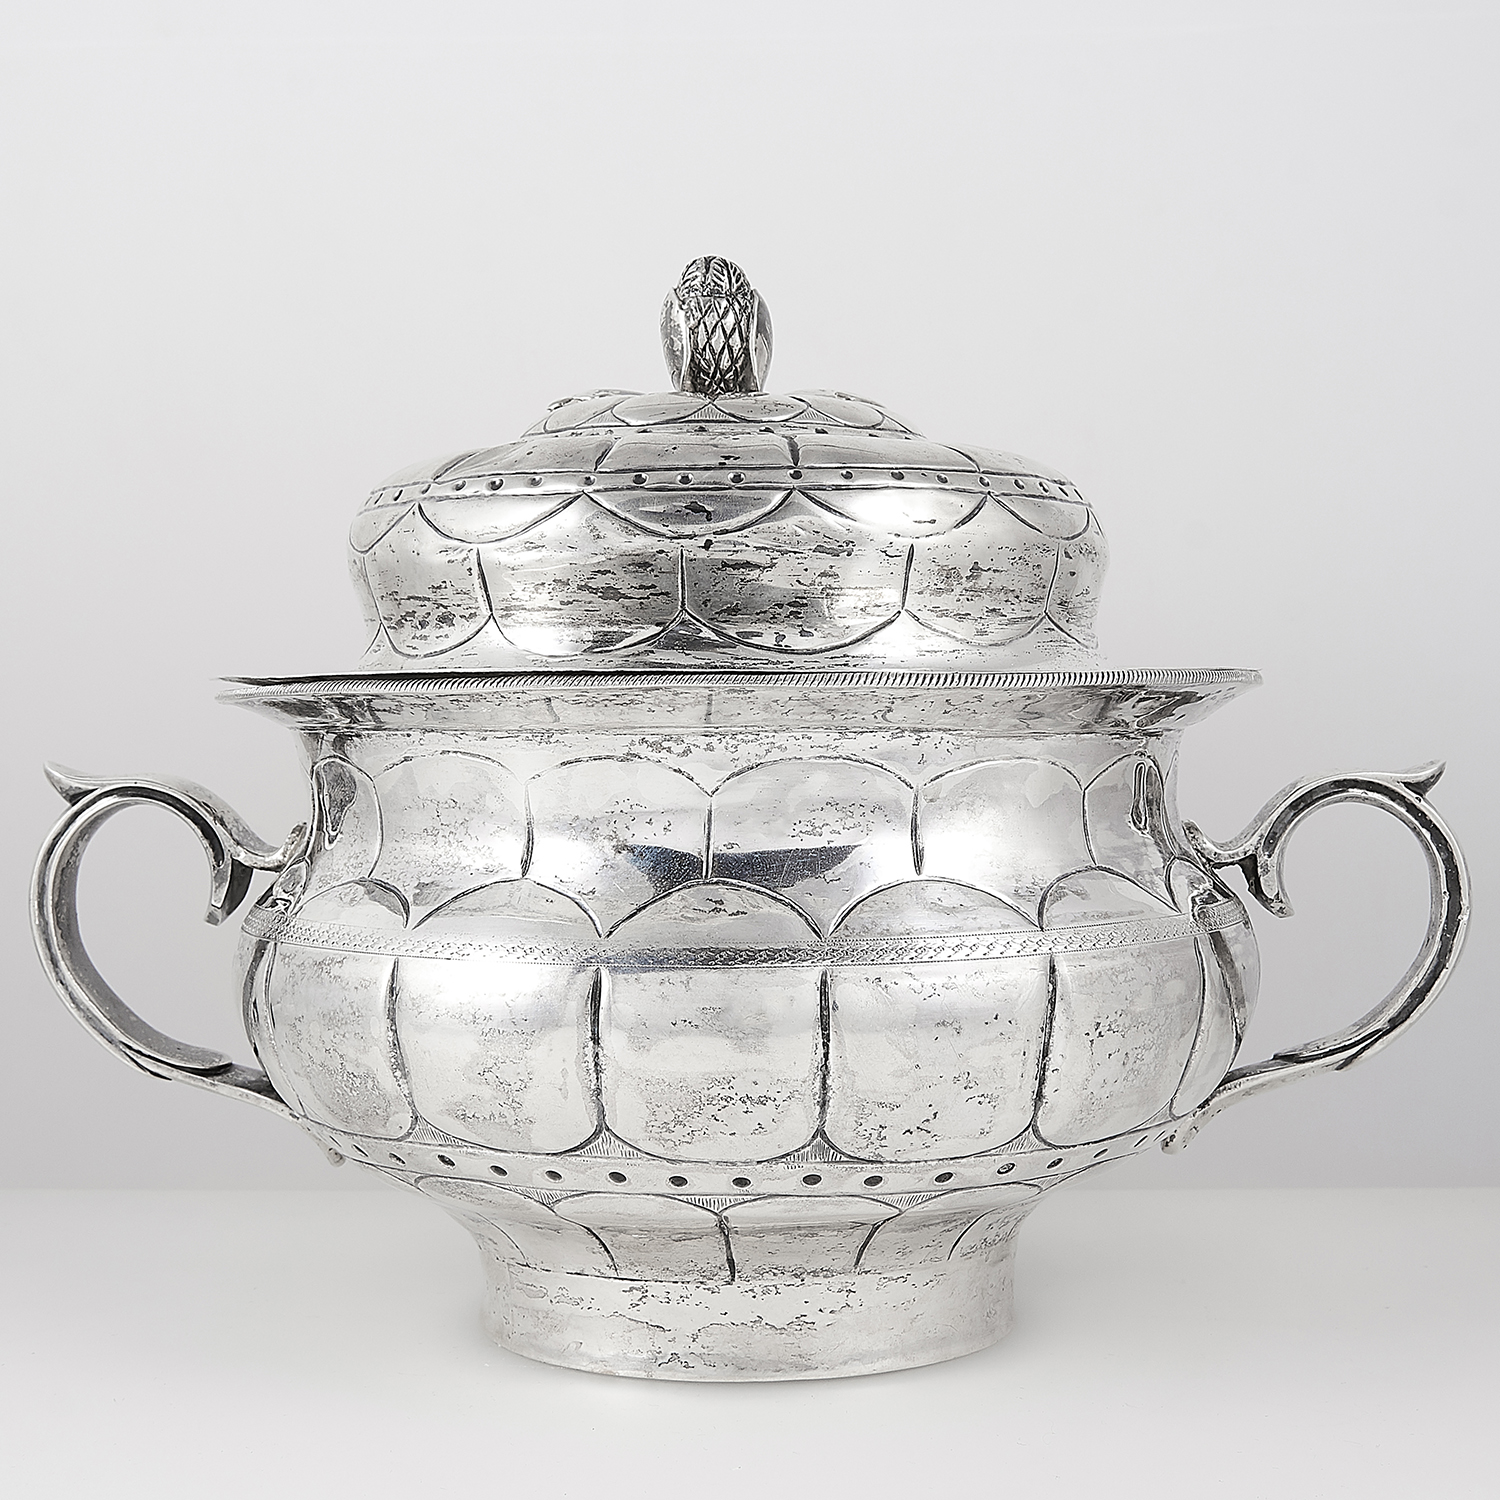 ANTIQUE MEXICAN SILVER POT AND COVER, 19TH CENTURY circular baluster form with chased decoration,